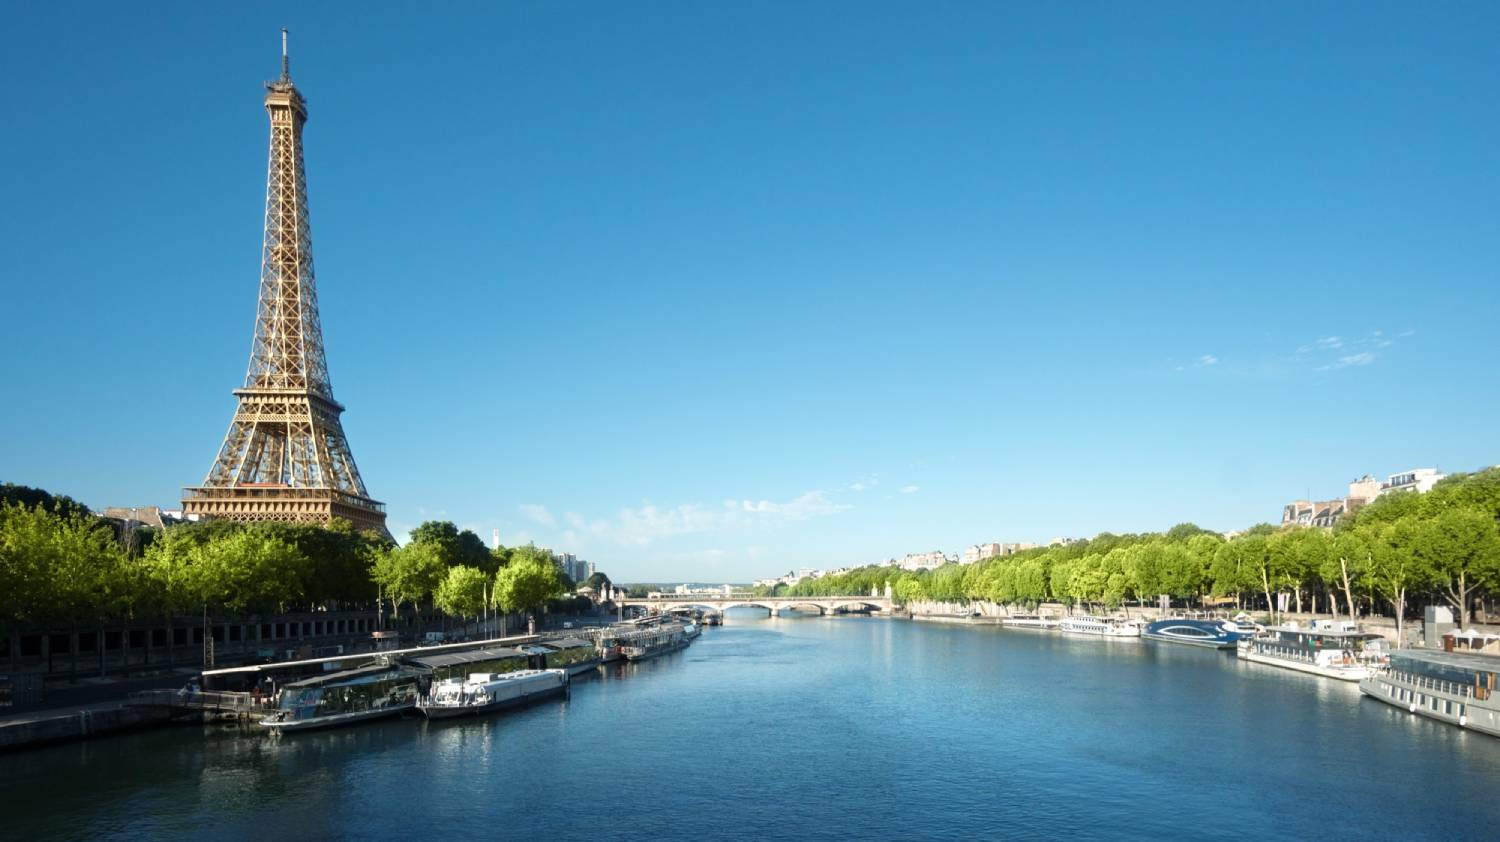 River Seine - Things To Do In Paris